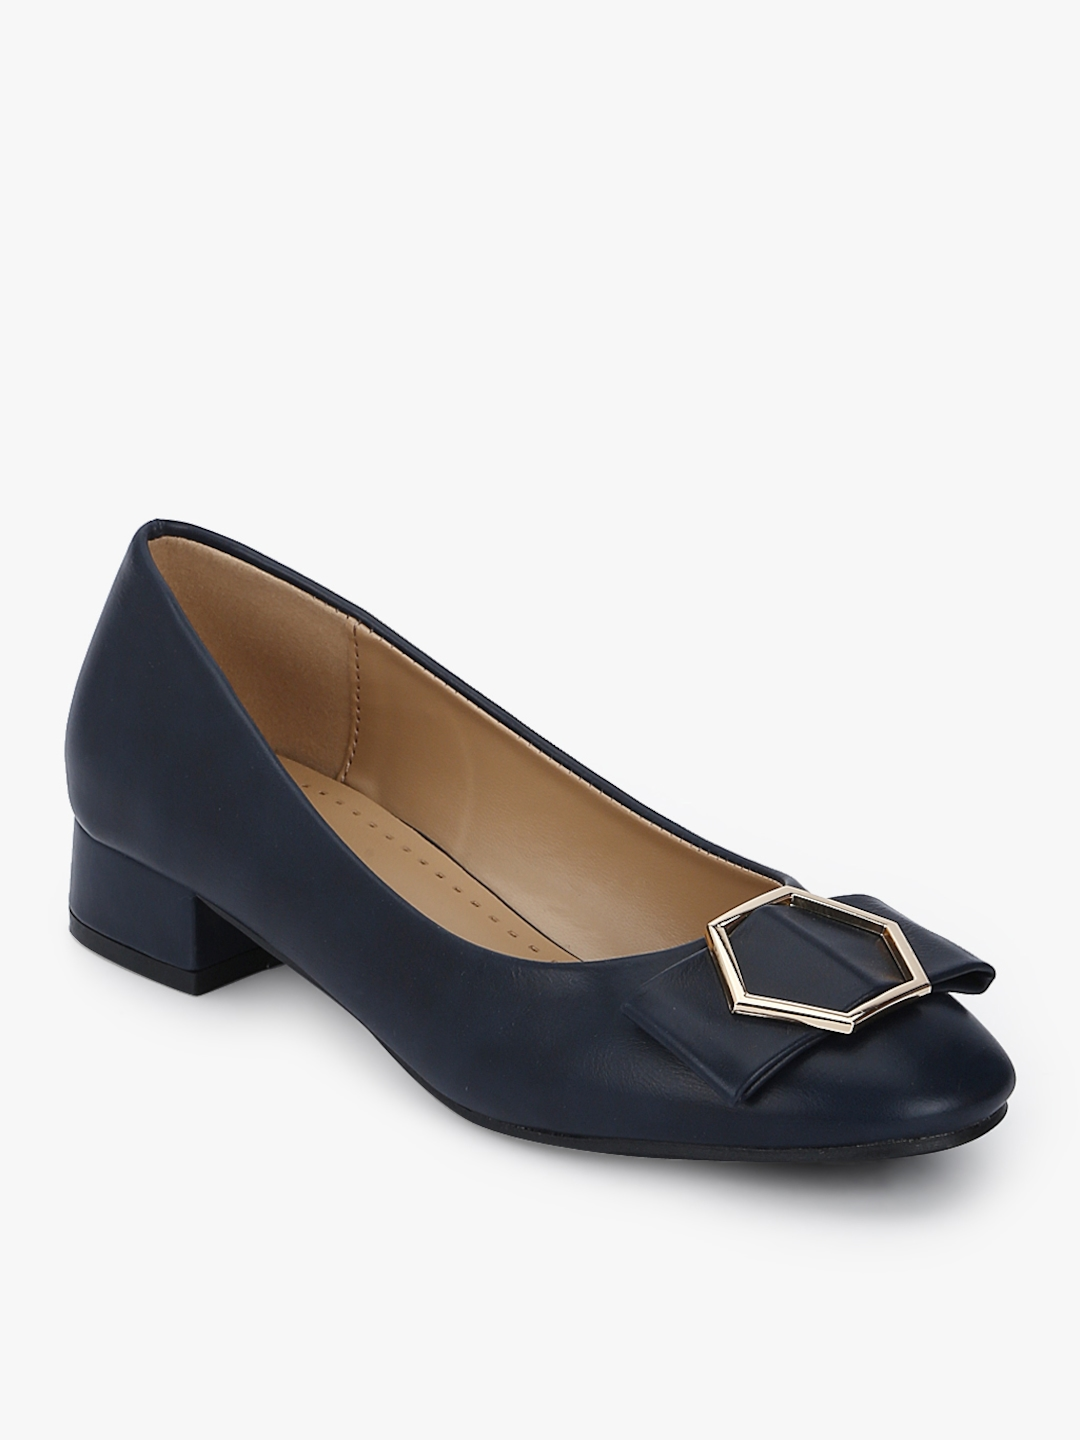 440d3954c8a5 Buy Navy Blue Bow Belly Shoes - Flats for Women 7683878 | Myntra